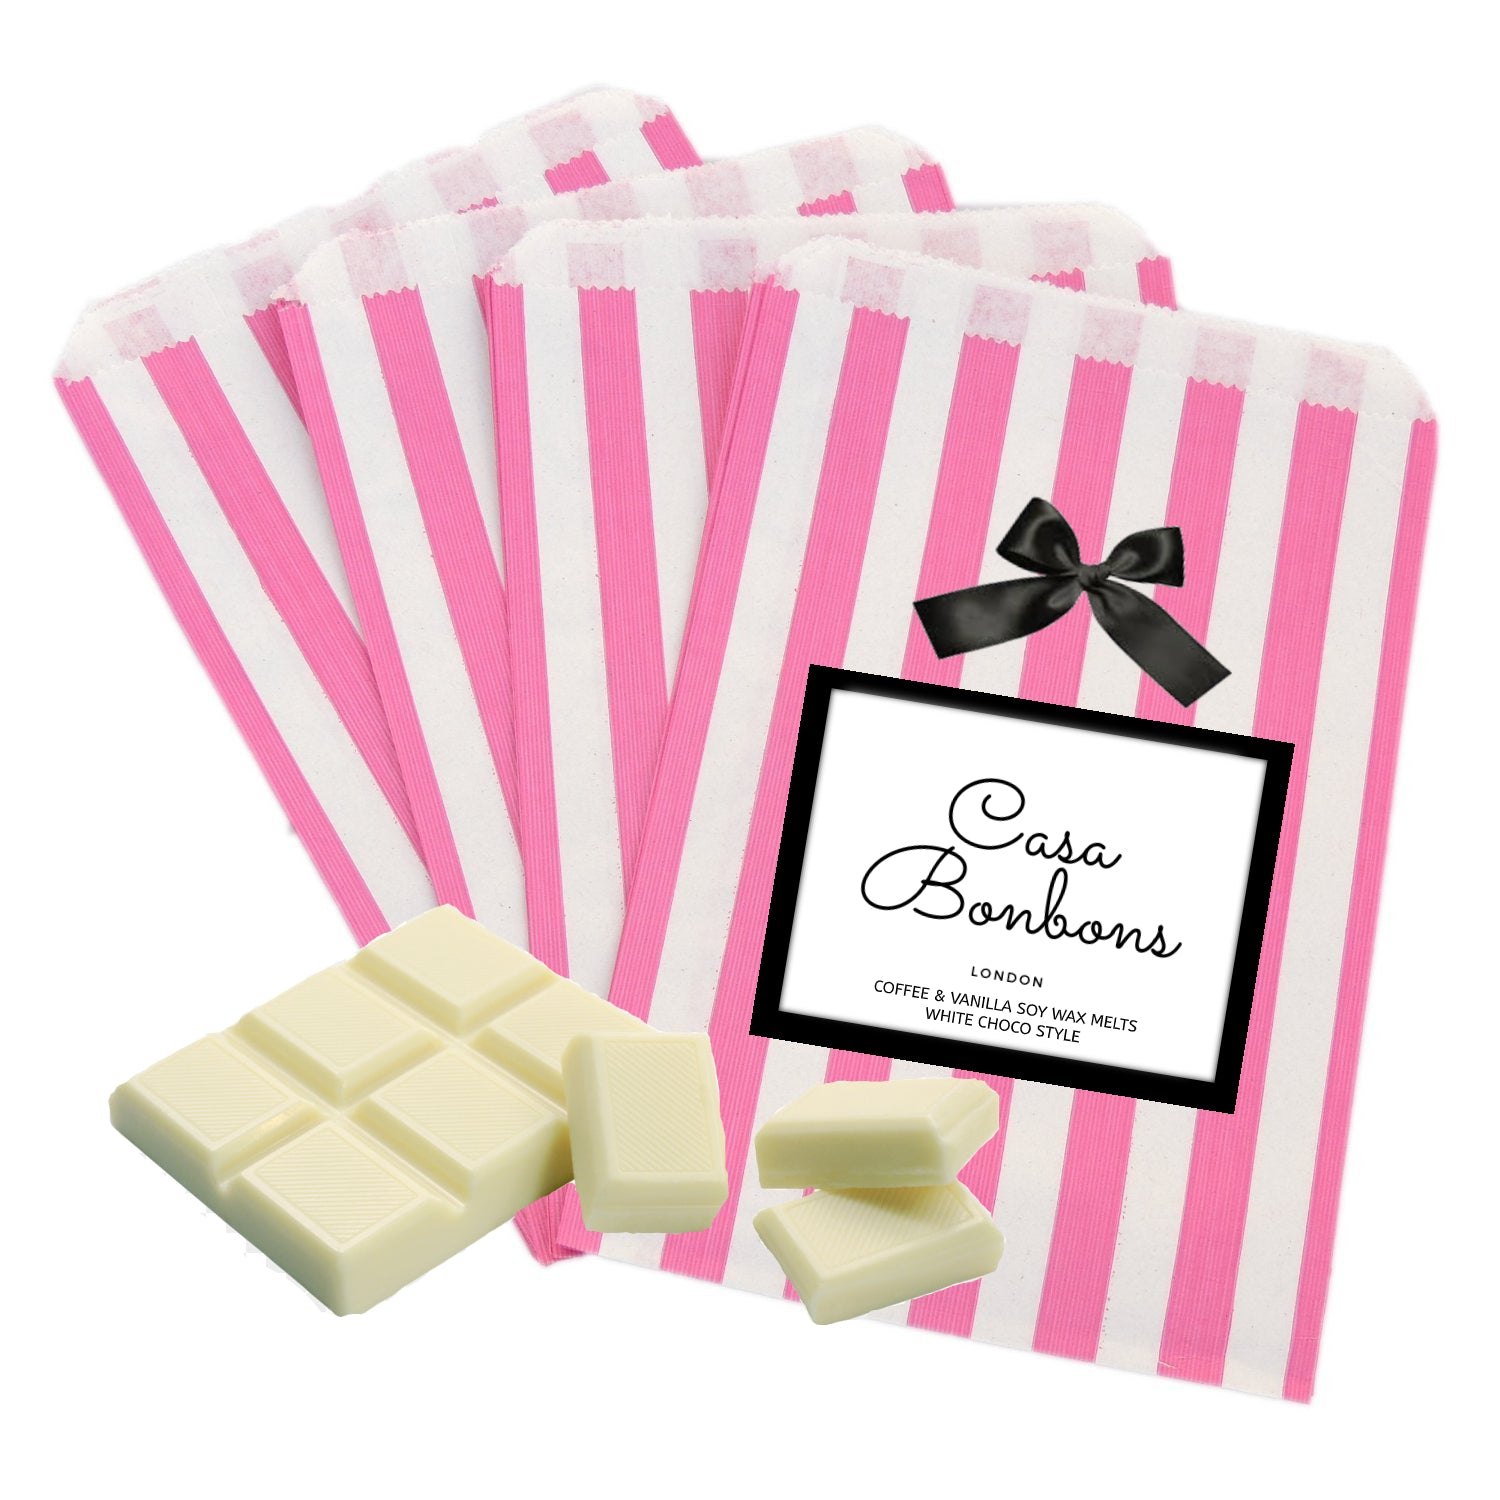 Coffee & Vanilla gentle scented white chocolate style Soy Wax Melts,  PRE ORDER delivery end of February - natoorio